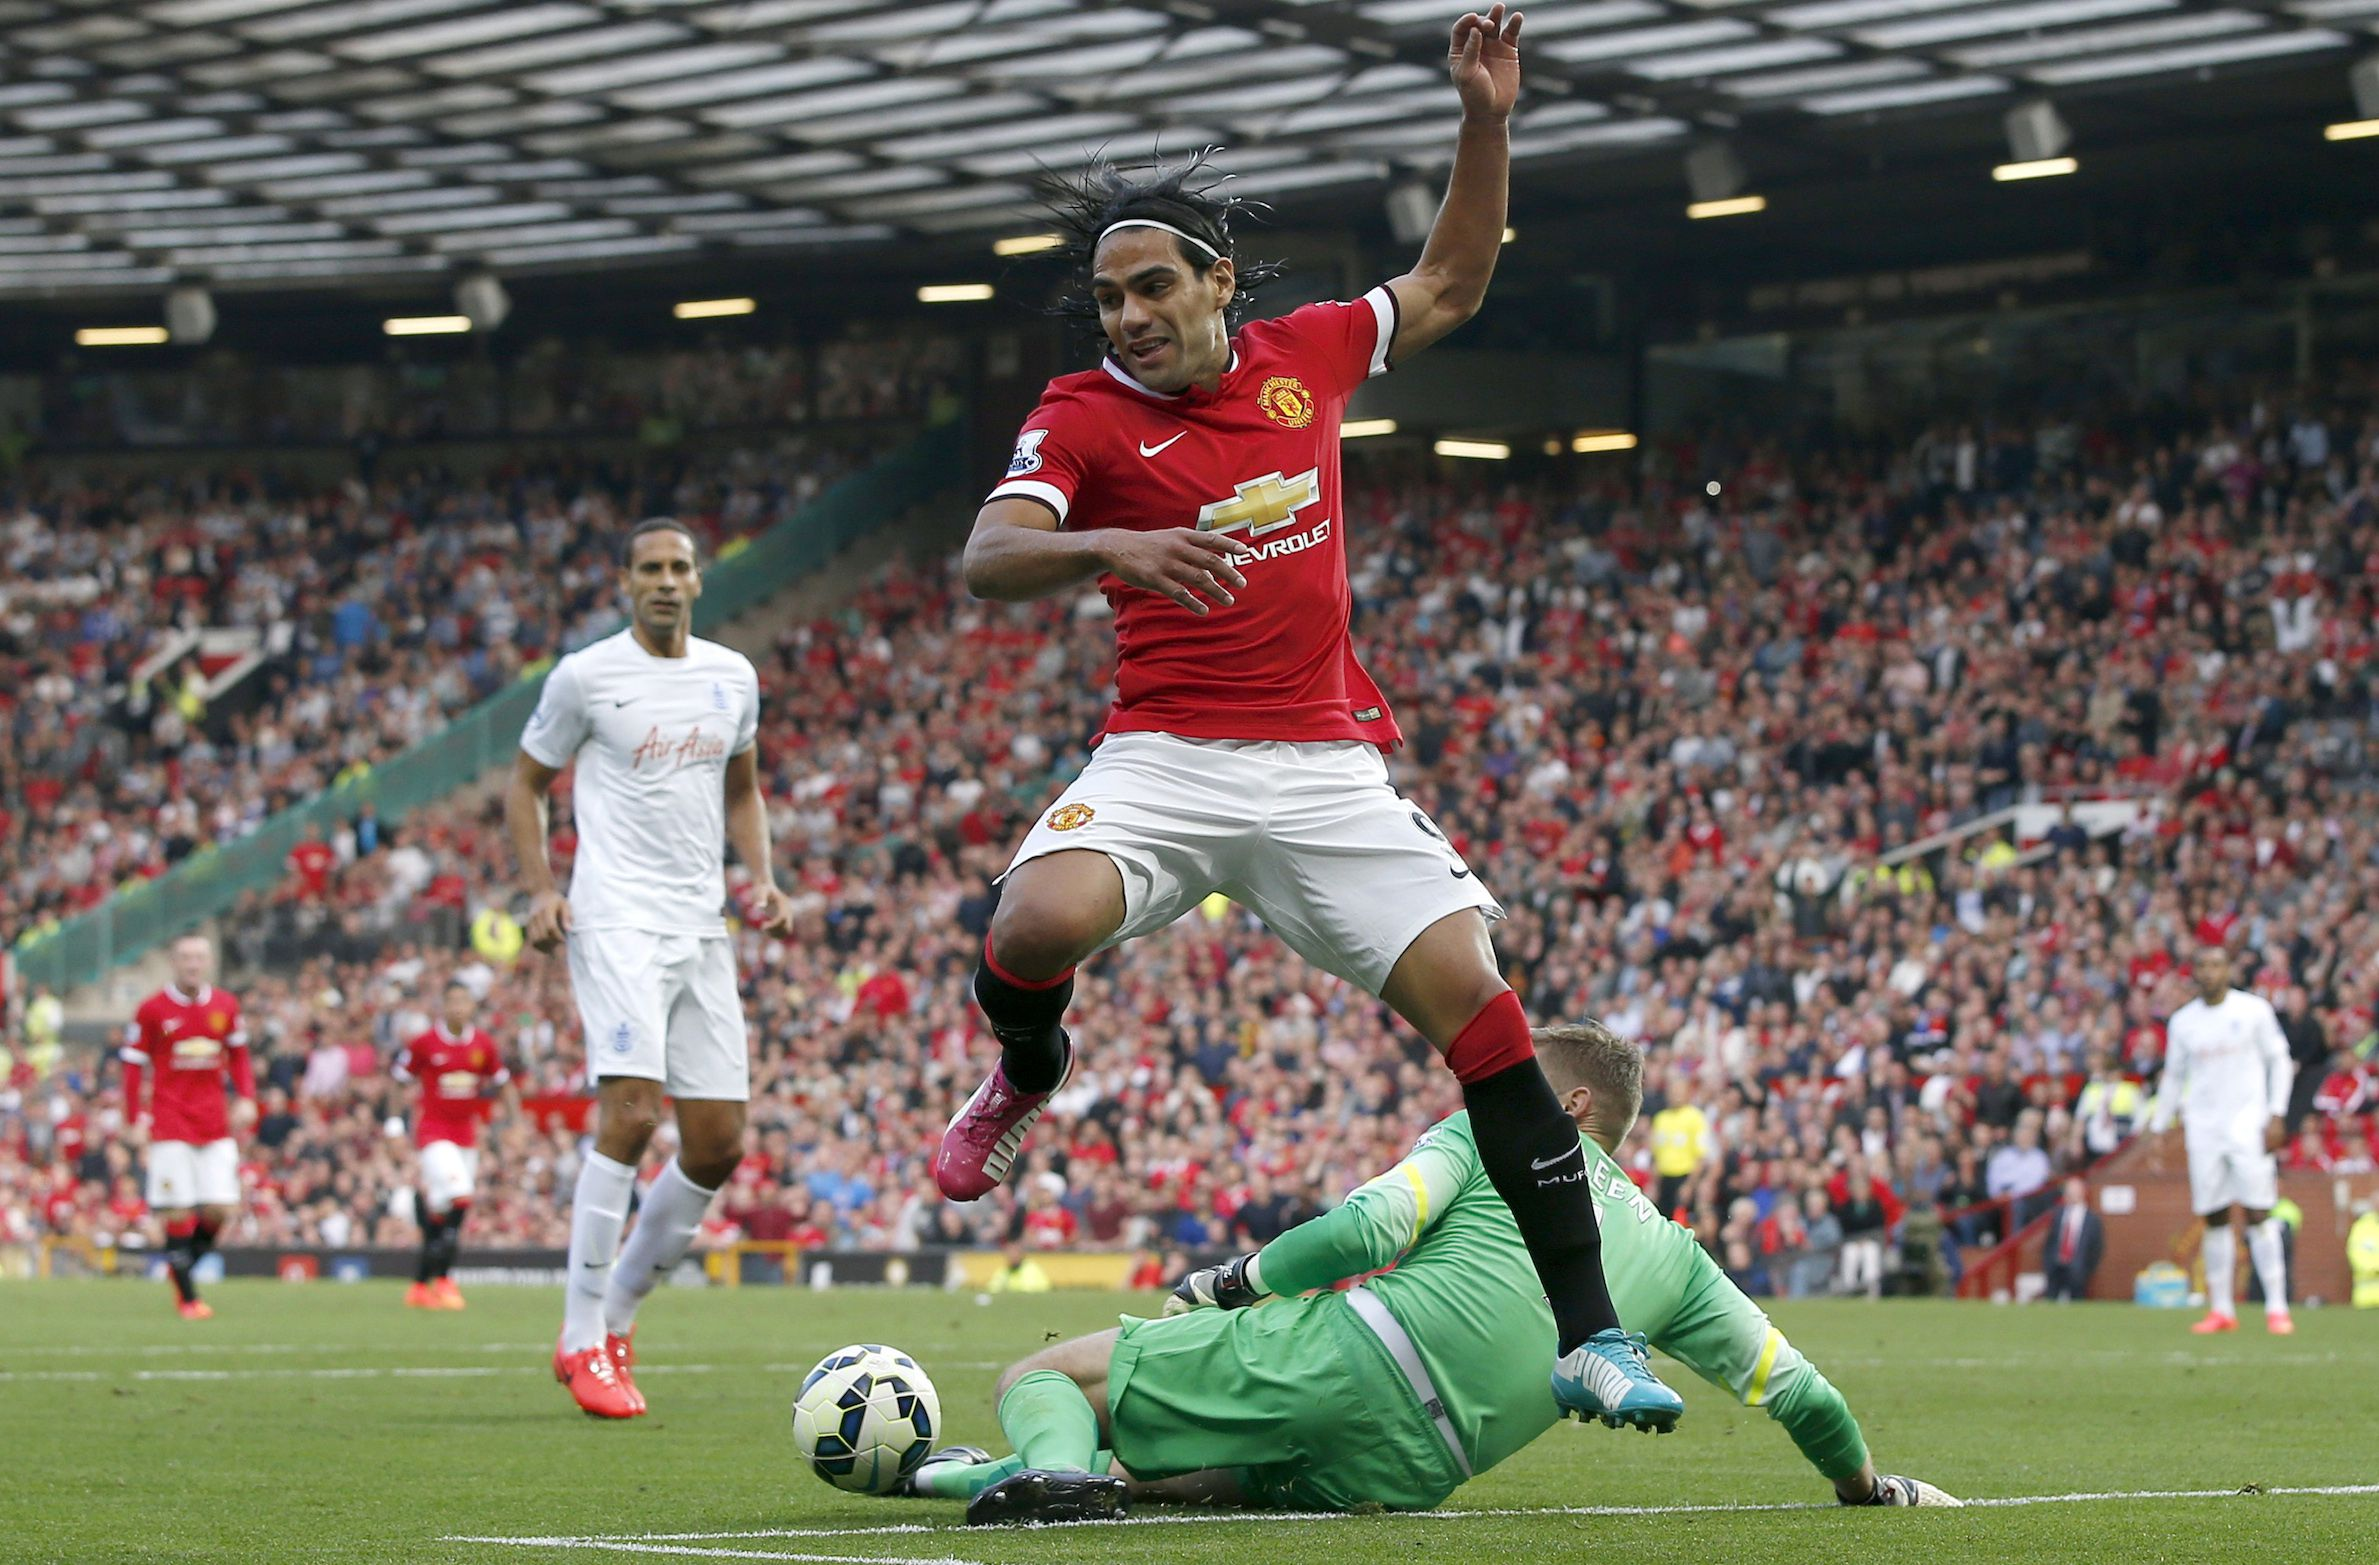 "Manchester United's Radamel Falcao (front) is challenged by Queens Park Rangers' goalkeeper Robert Green (R) during their English Premier League soccer match at Old Trafford in Manchester, northern England September 14, 2014. REUTERS/Andrew Yates (BRITAIN - Tags: SPORT SOCCER TPX IMAGES OF THE DAY) NO USE WITH UNAUTHORIZED AUDIO, VIDEO, DATA, FIXTURE LISTS, CLUB/LEAGUE LOGOS OR ""LIVE"" SERVICES. ONLINE IN-MATCH USE LIMITED TO 45 IMAGES, NO VIDEO EMULATION. NO USE IN BETTING, GAMES OR SINGLE CLUB/LEAGUE/PLAYER PUBLICATIONS. FOR EDITORIAL USE ONLY. NOT FOR SALE FOR MARKETING OR ADVERTISING CAMPAIGNS - RTR4665T"